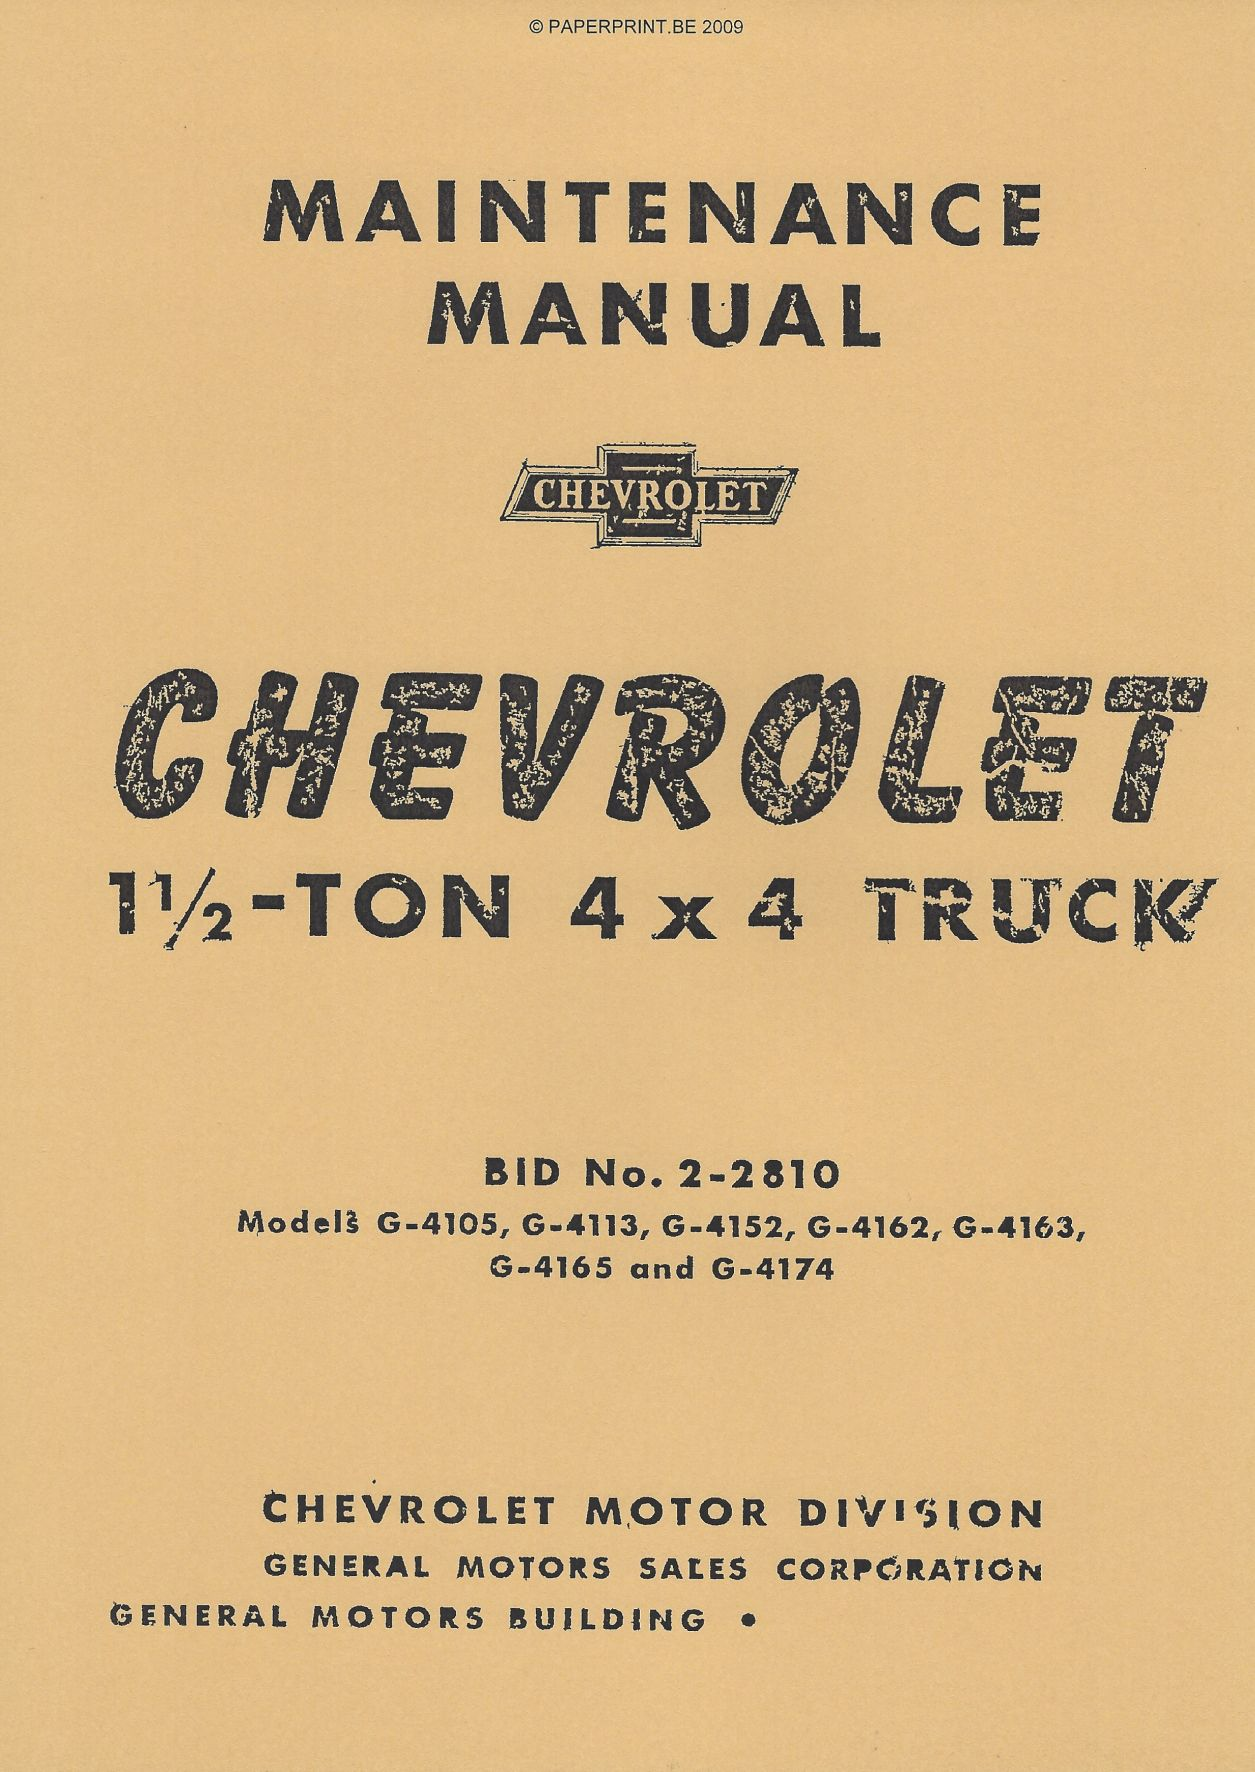 TM 10-1431 US CHEVROLET 1 ½-TON 4x4 TRUCK MAINTENANCE MANUAL